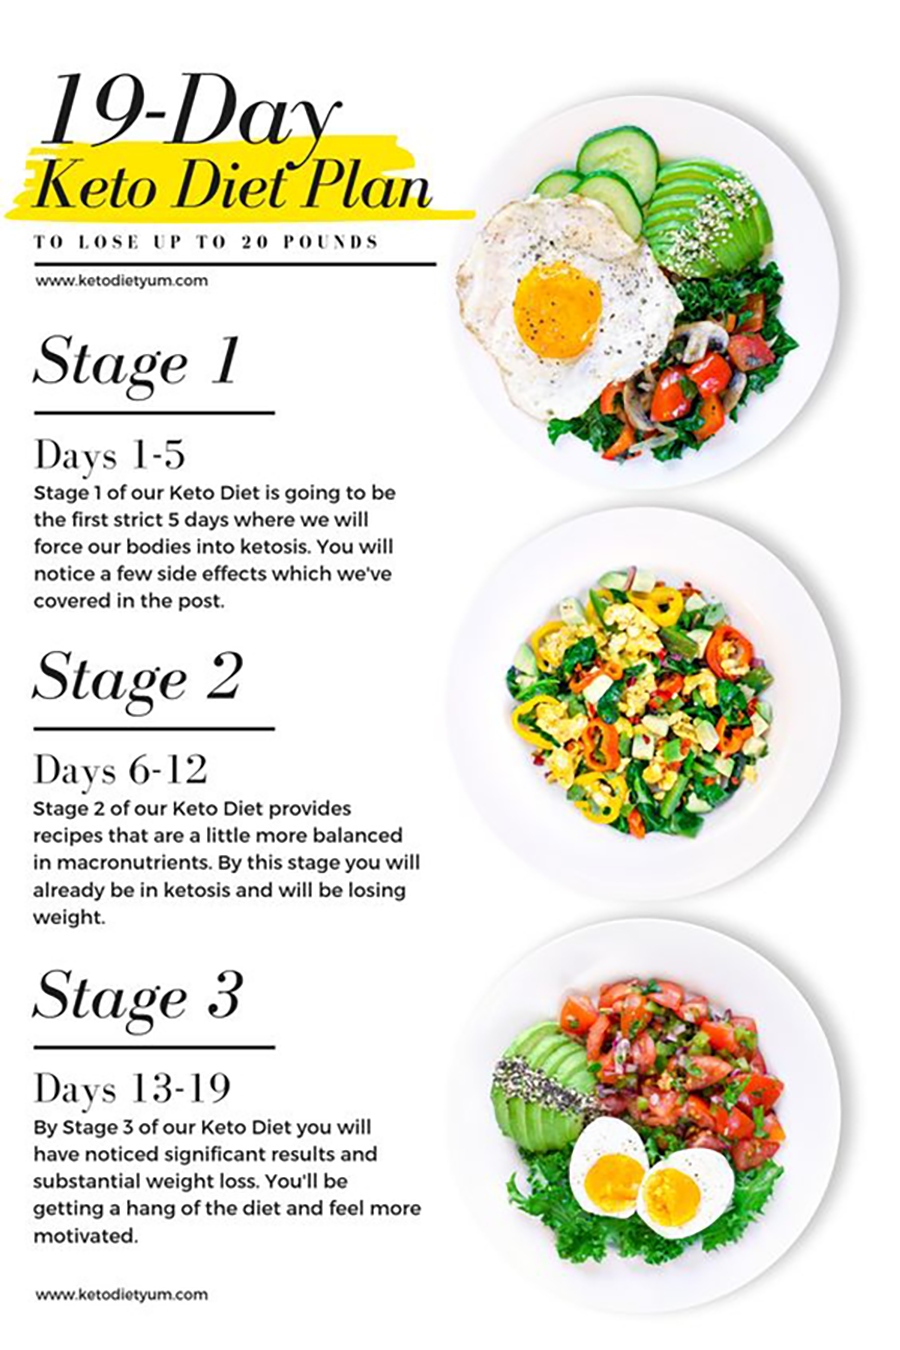 19 Day Keto Meal Plan Keto Diet Guide Keto Diet Food List Keto Diet Menu